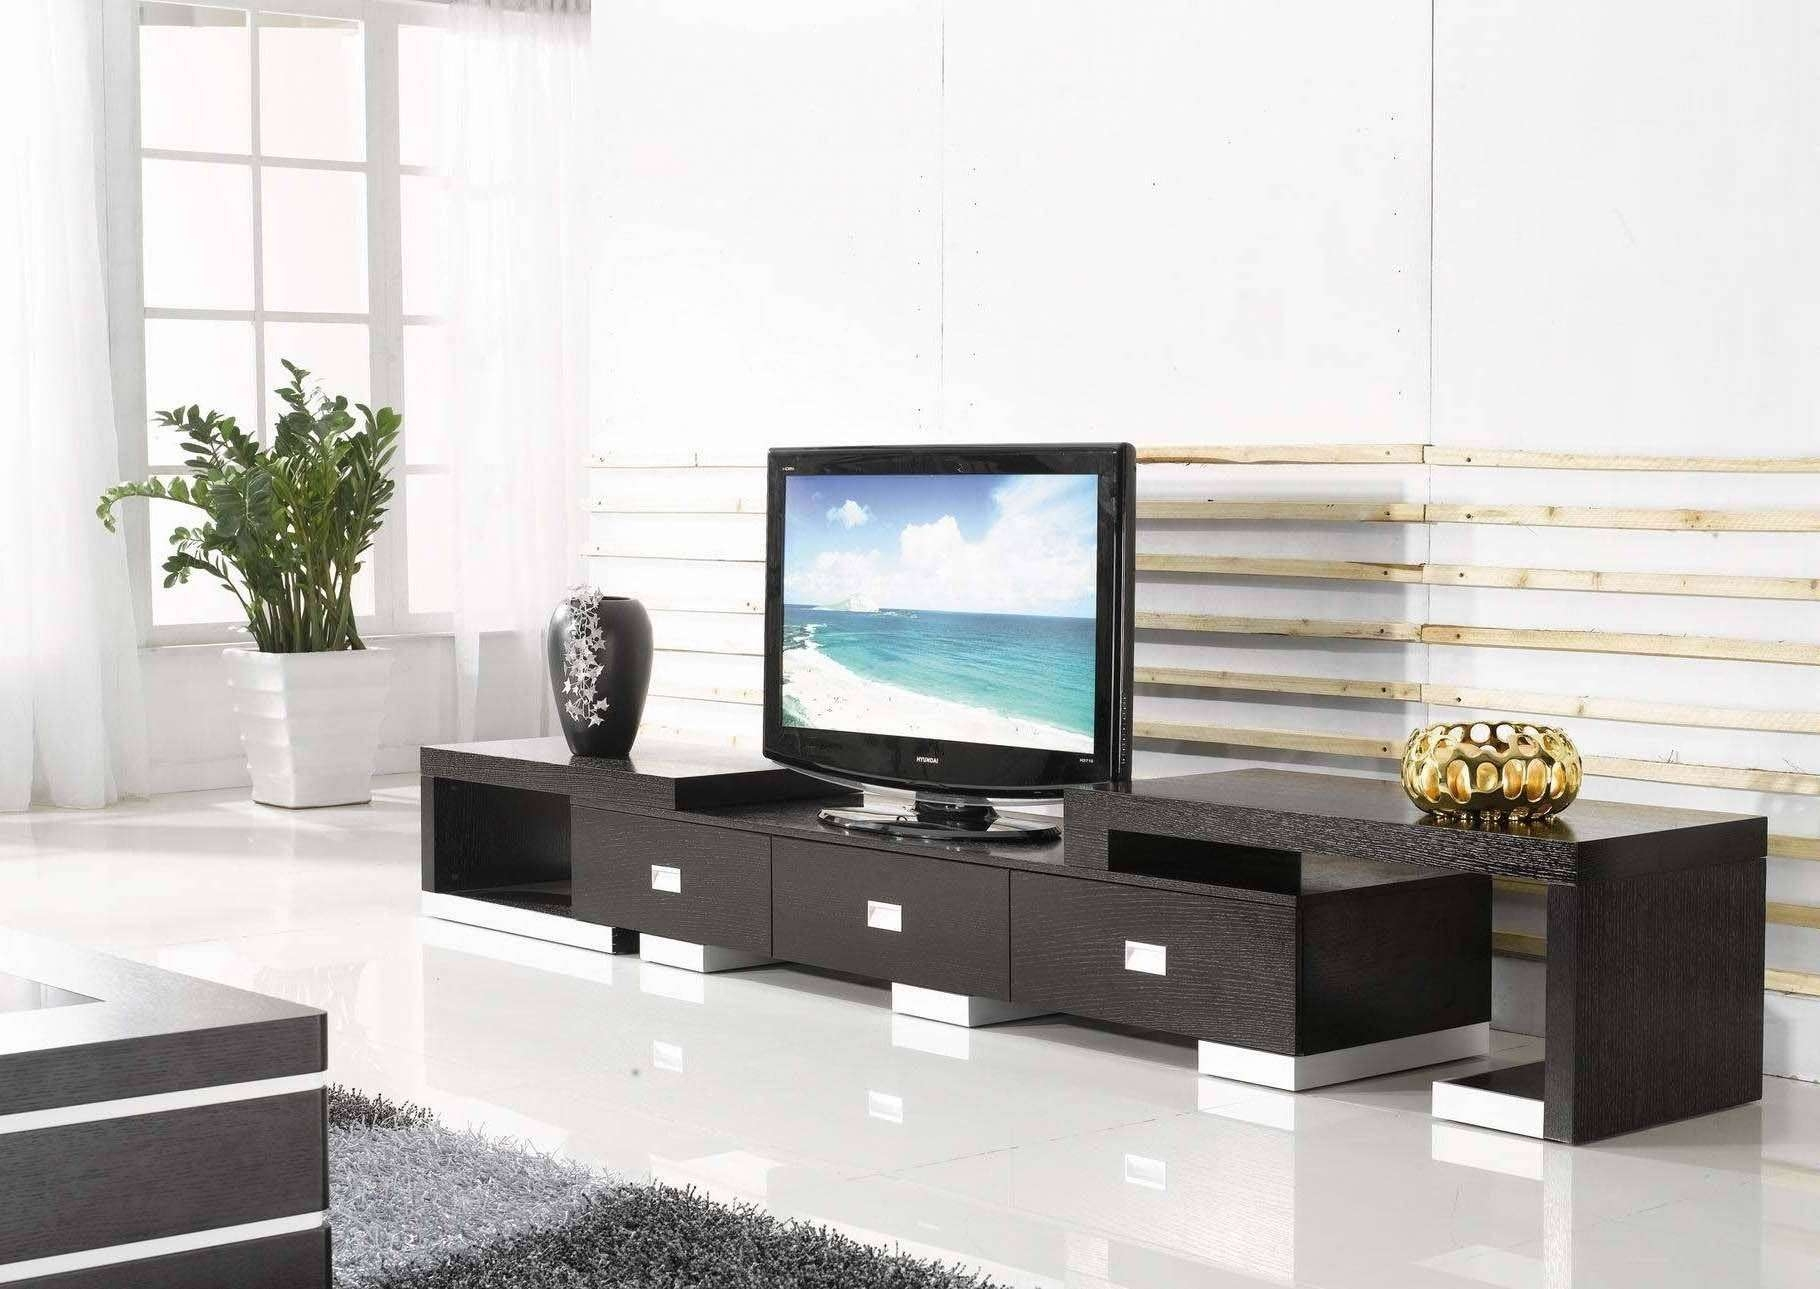 Coffe Table : Tv Stand And Coffee Table Sets Cheap End Setscheap With Coffee Tables And Tv Stands Matching (View 2 of 15)